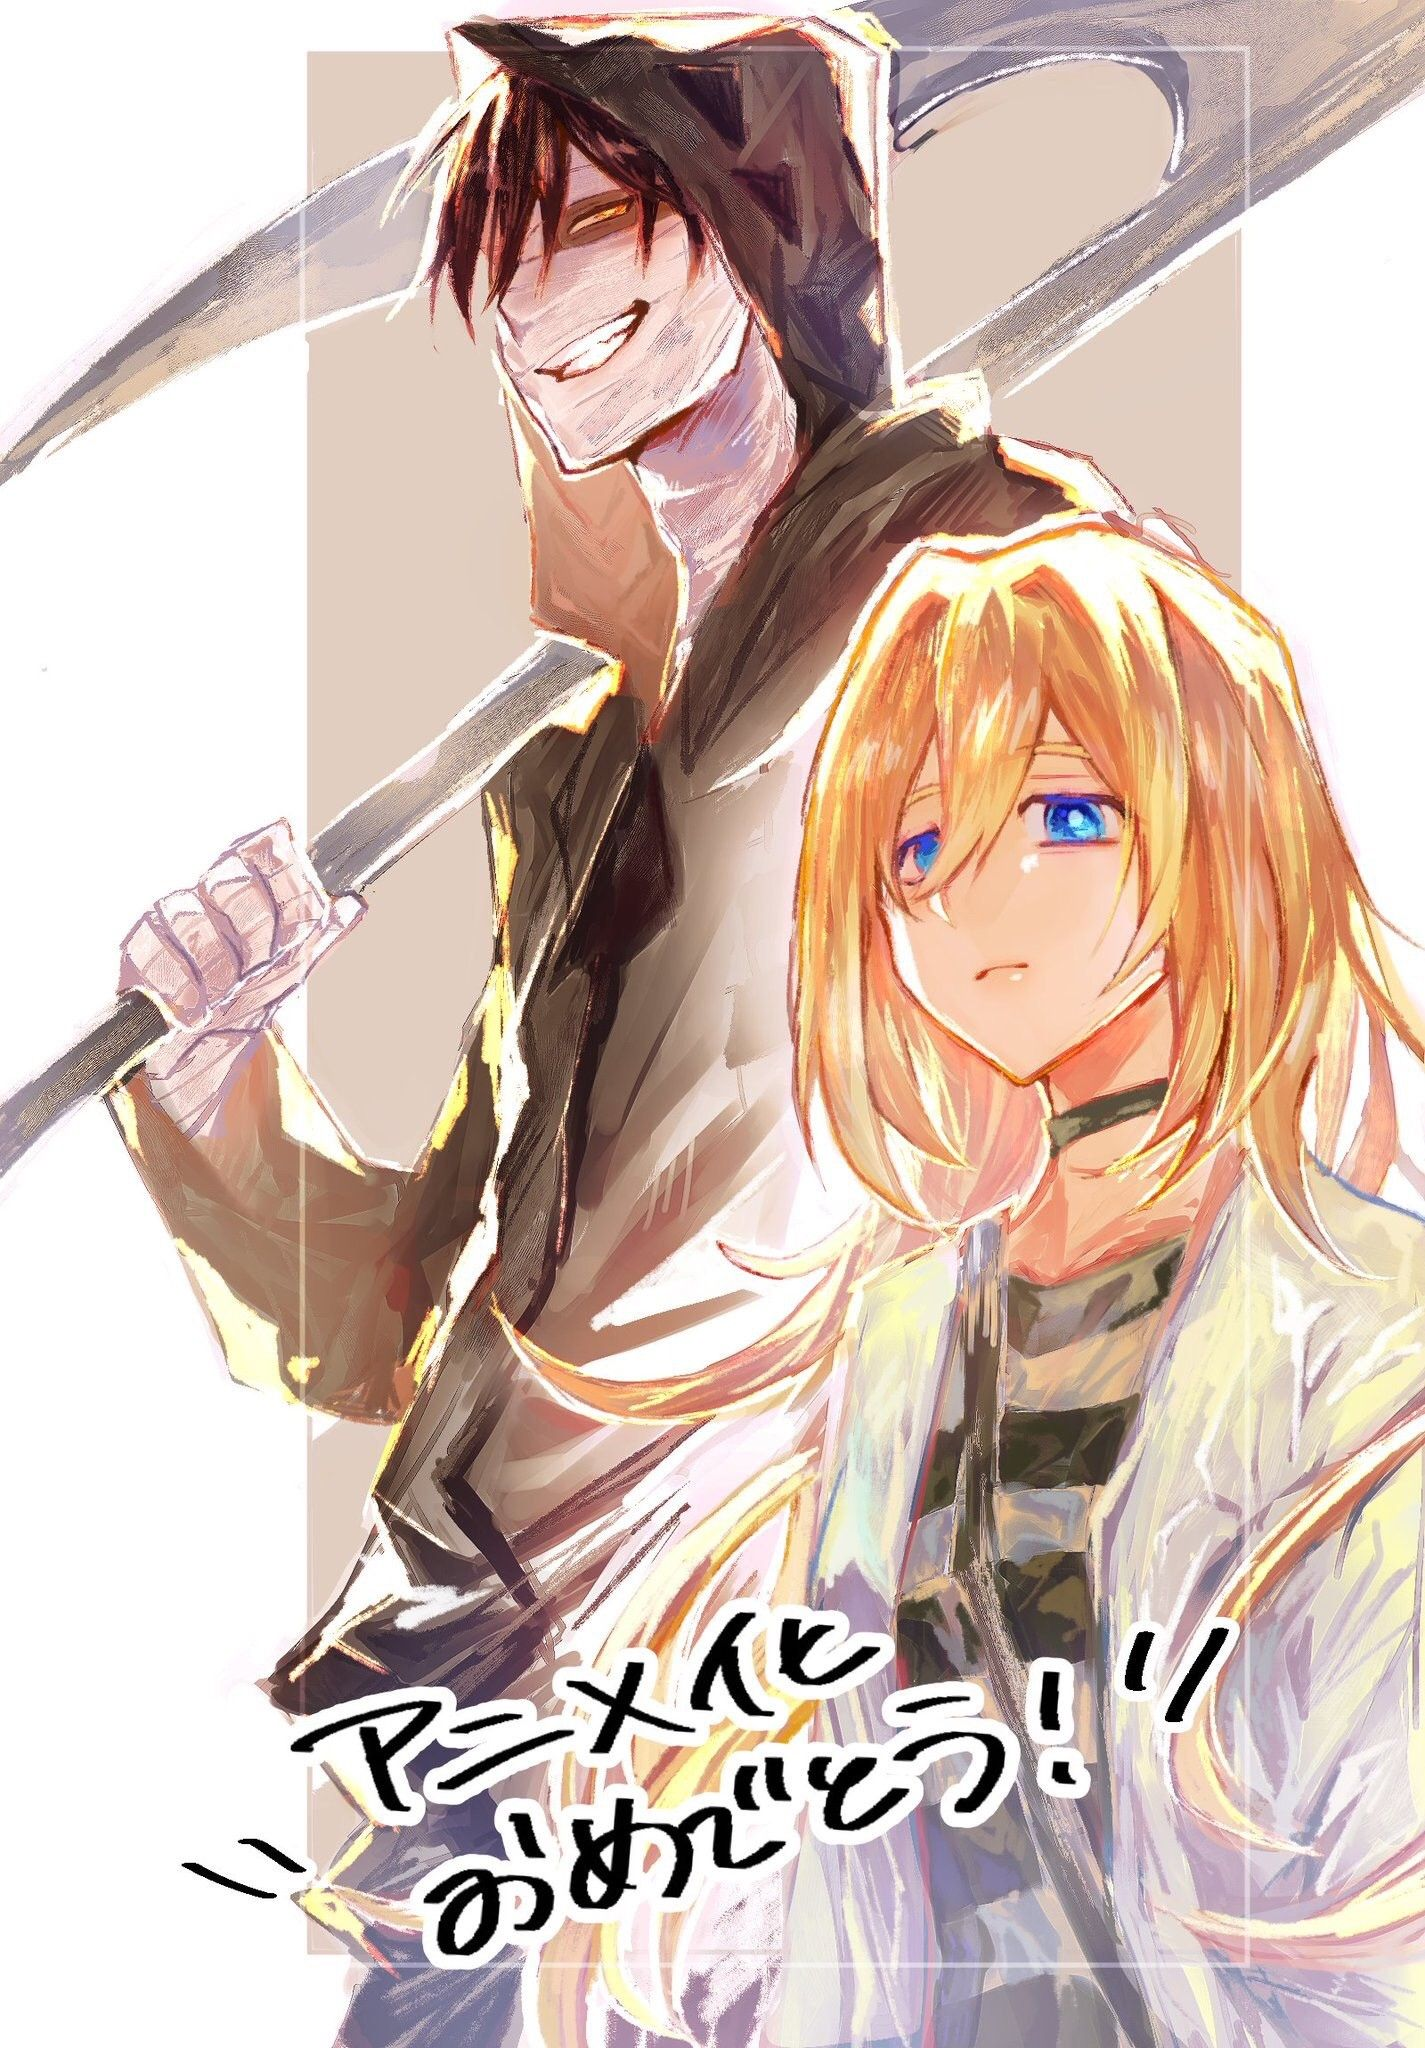 Pin by ♡ Λℓicε ♡ on Satsuriku no Tenshi in 2020 Angel of